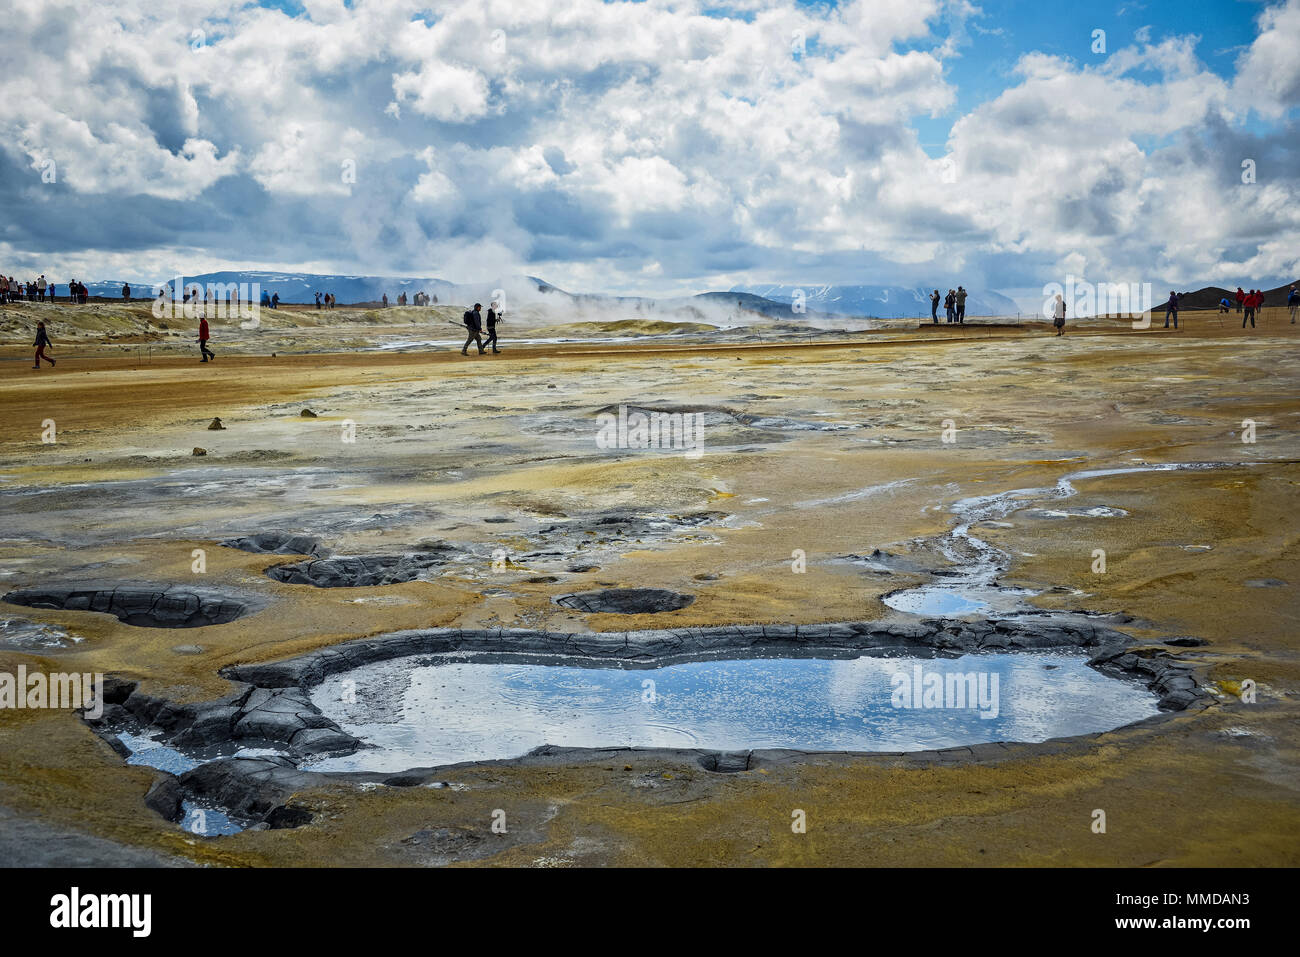 Iceland Landscape view - Stock Image